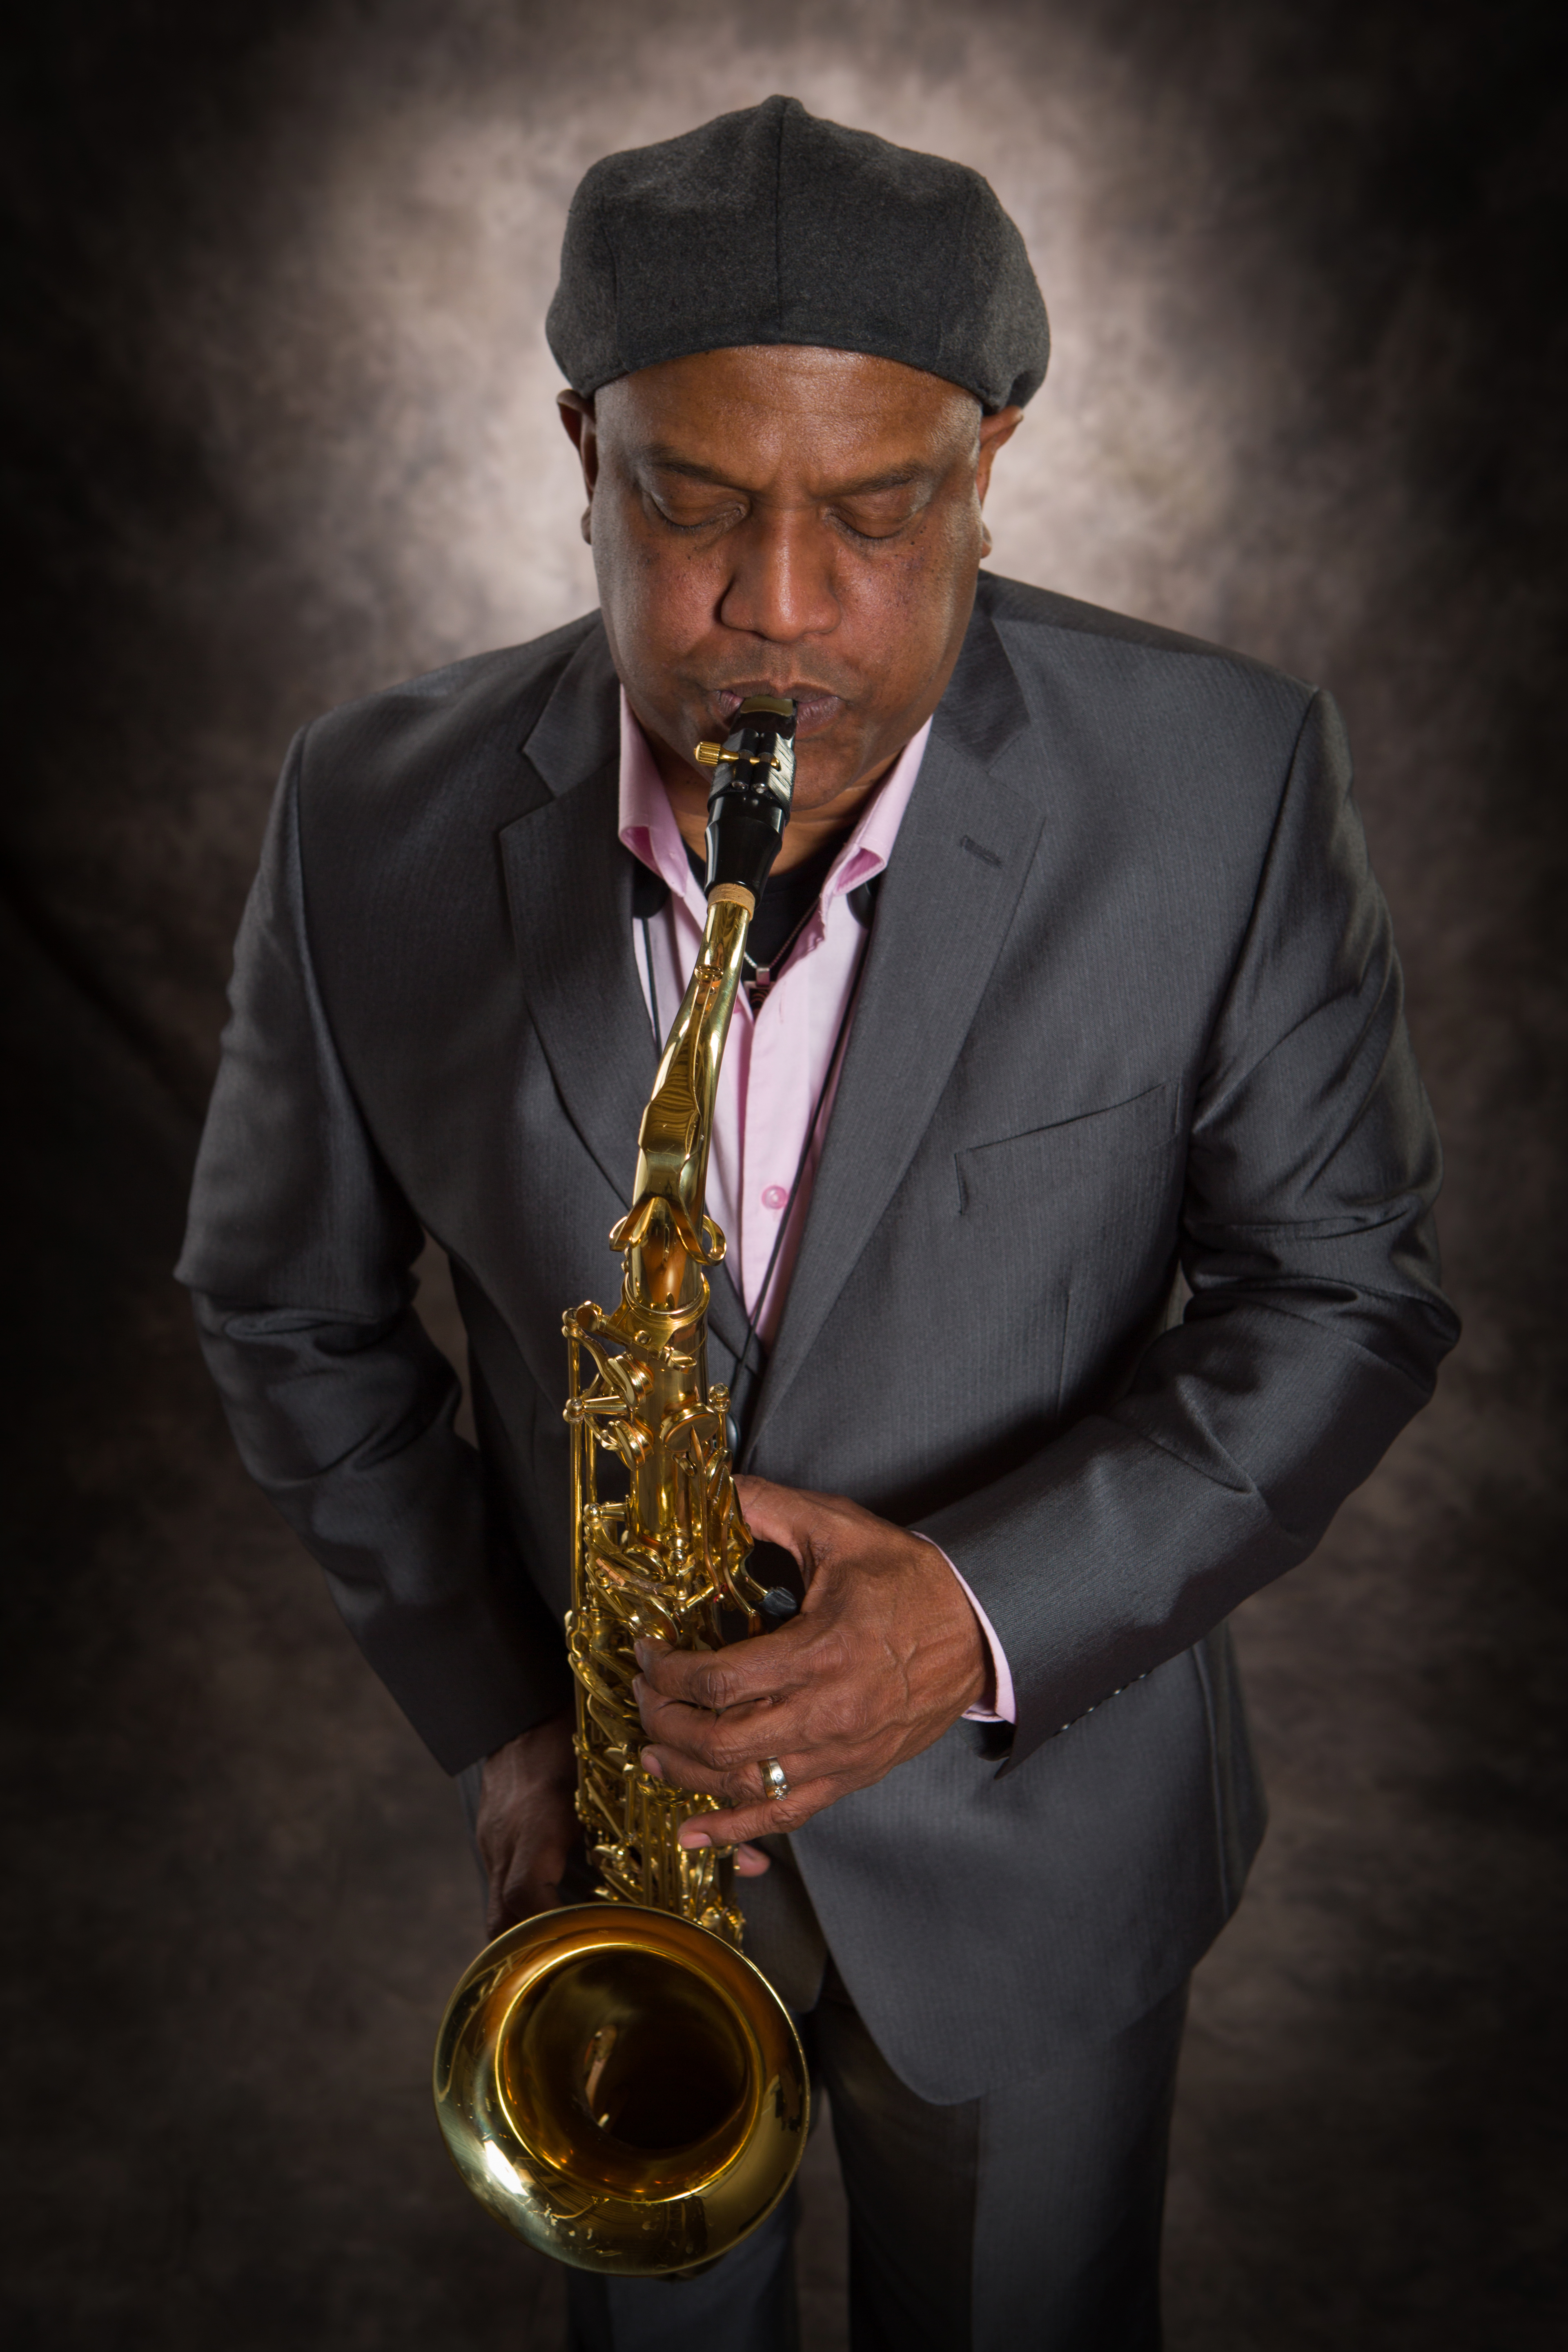 Man wearing a grey hat and suit playing the saxophone